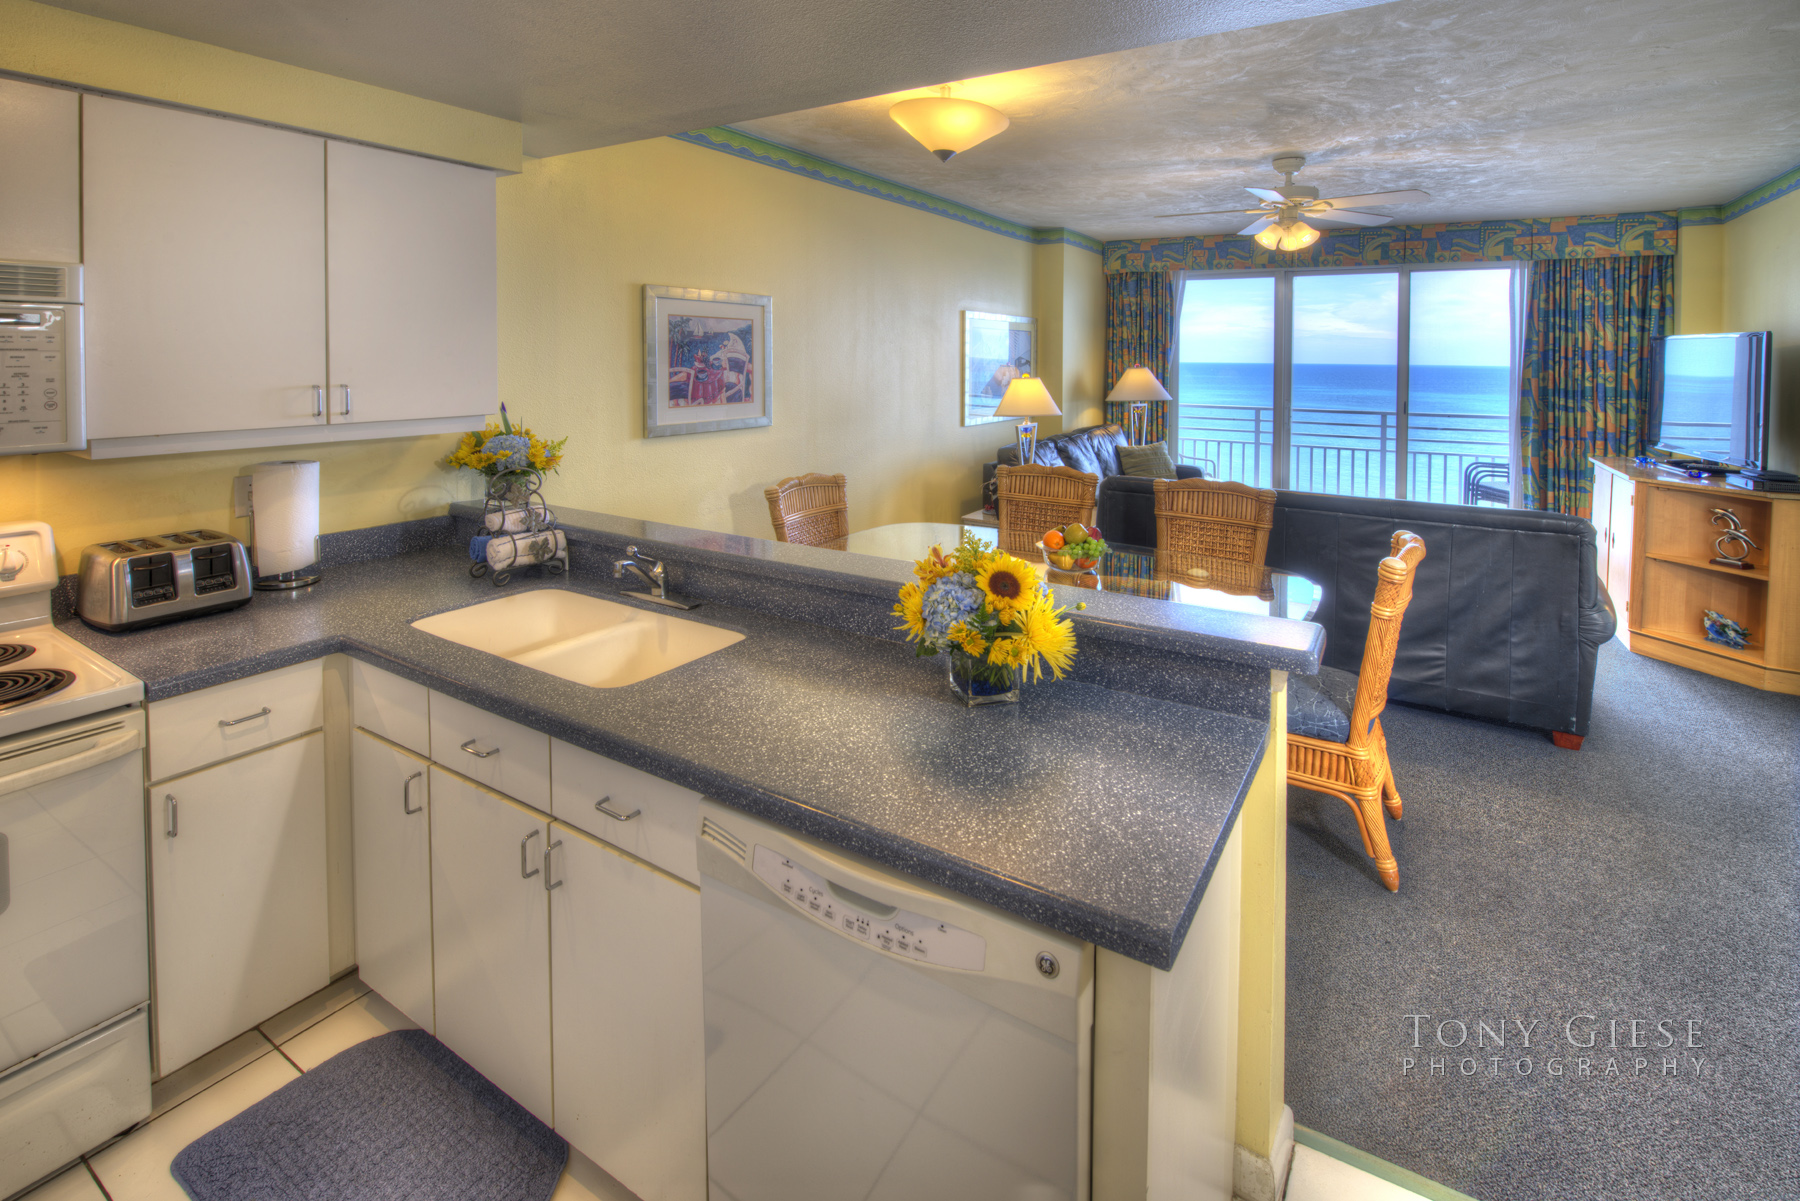 Wyndham Ocean Walk Resort newly remodeled kitchen area with all the latest appliances and a ocean view of Daytona Beach, Florida. Photography by Tony Giese